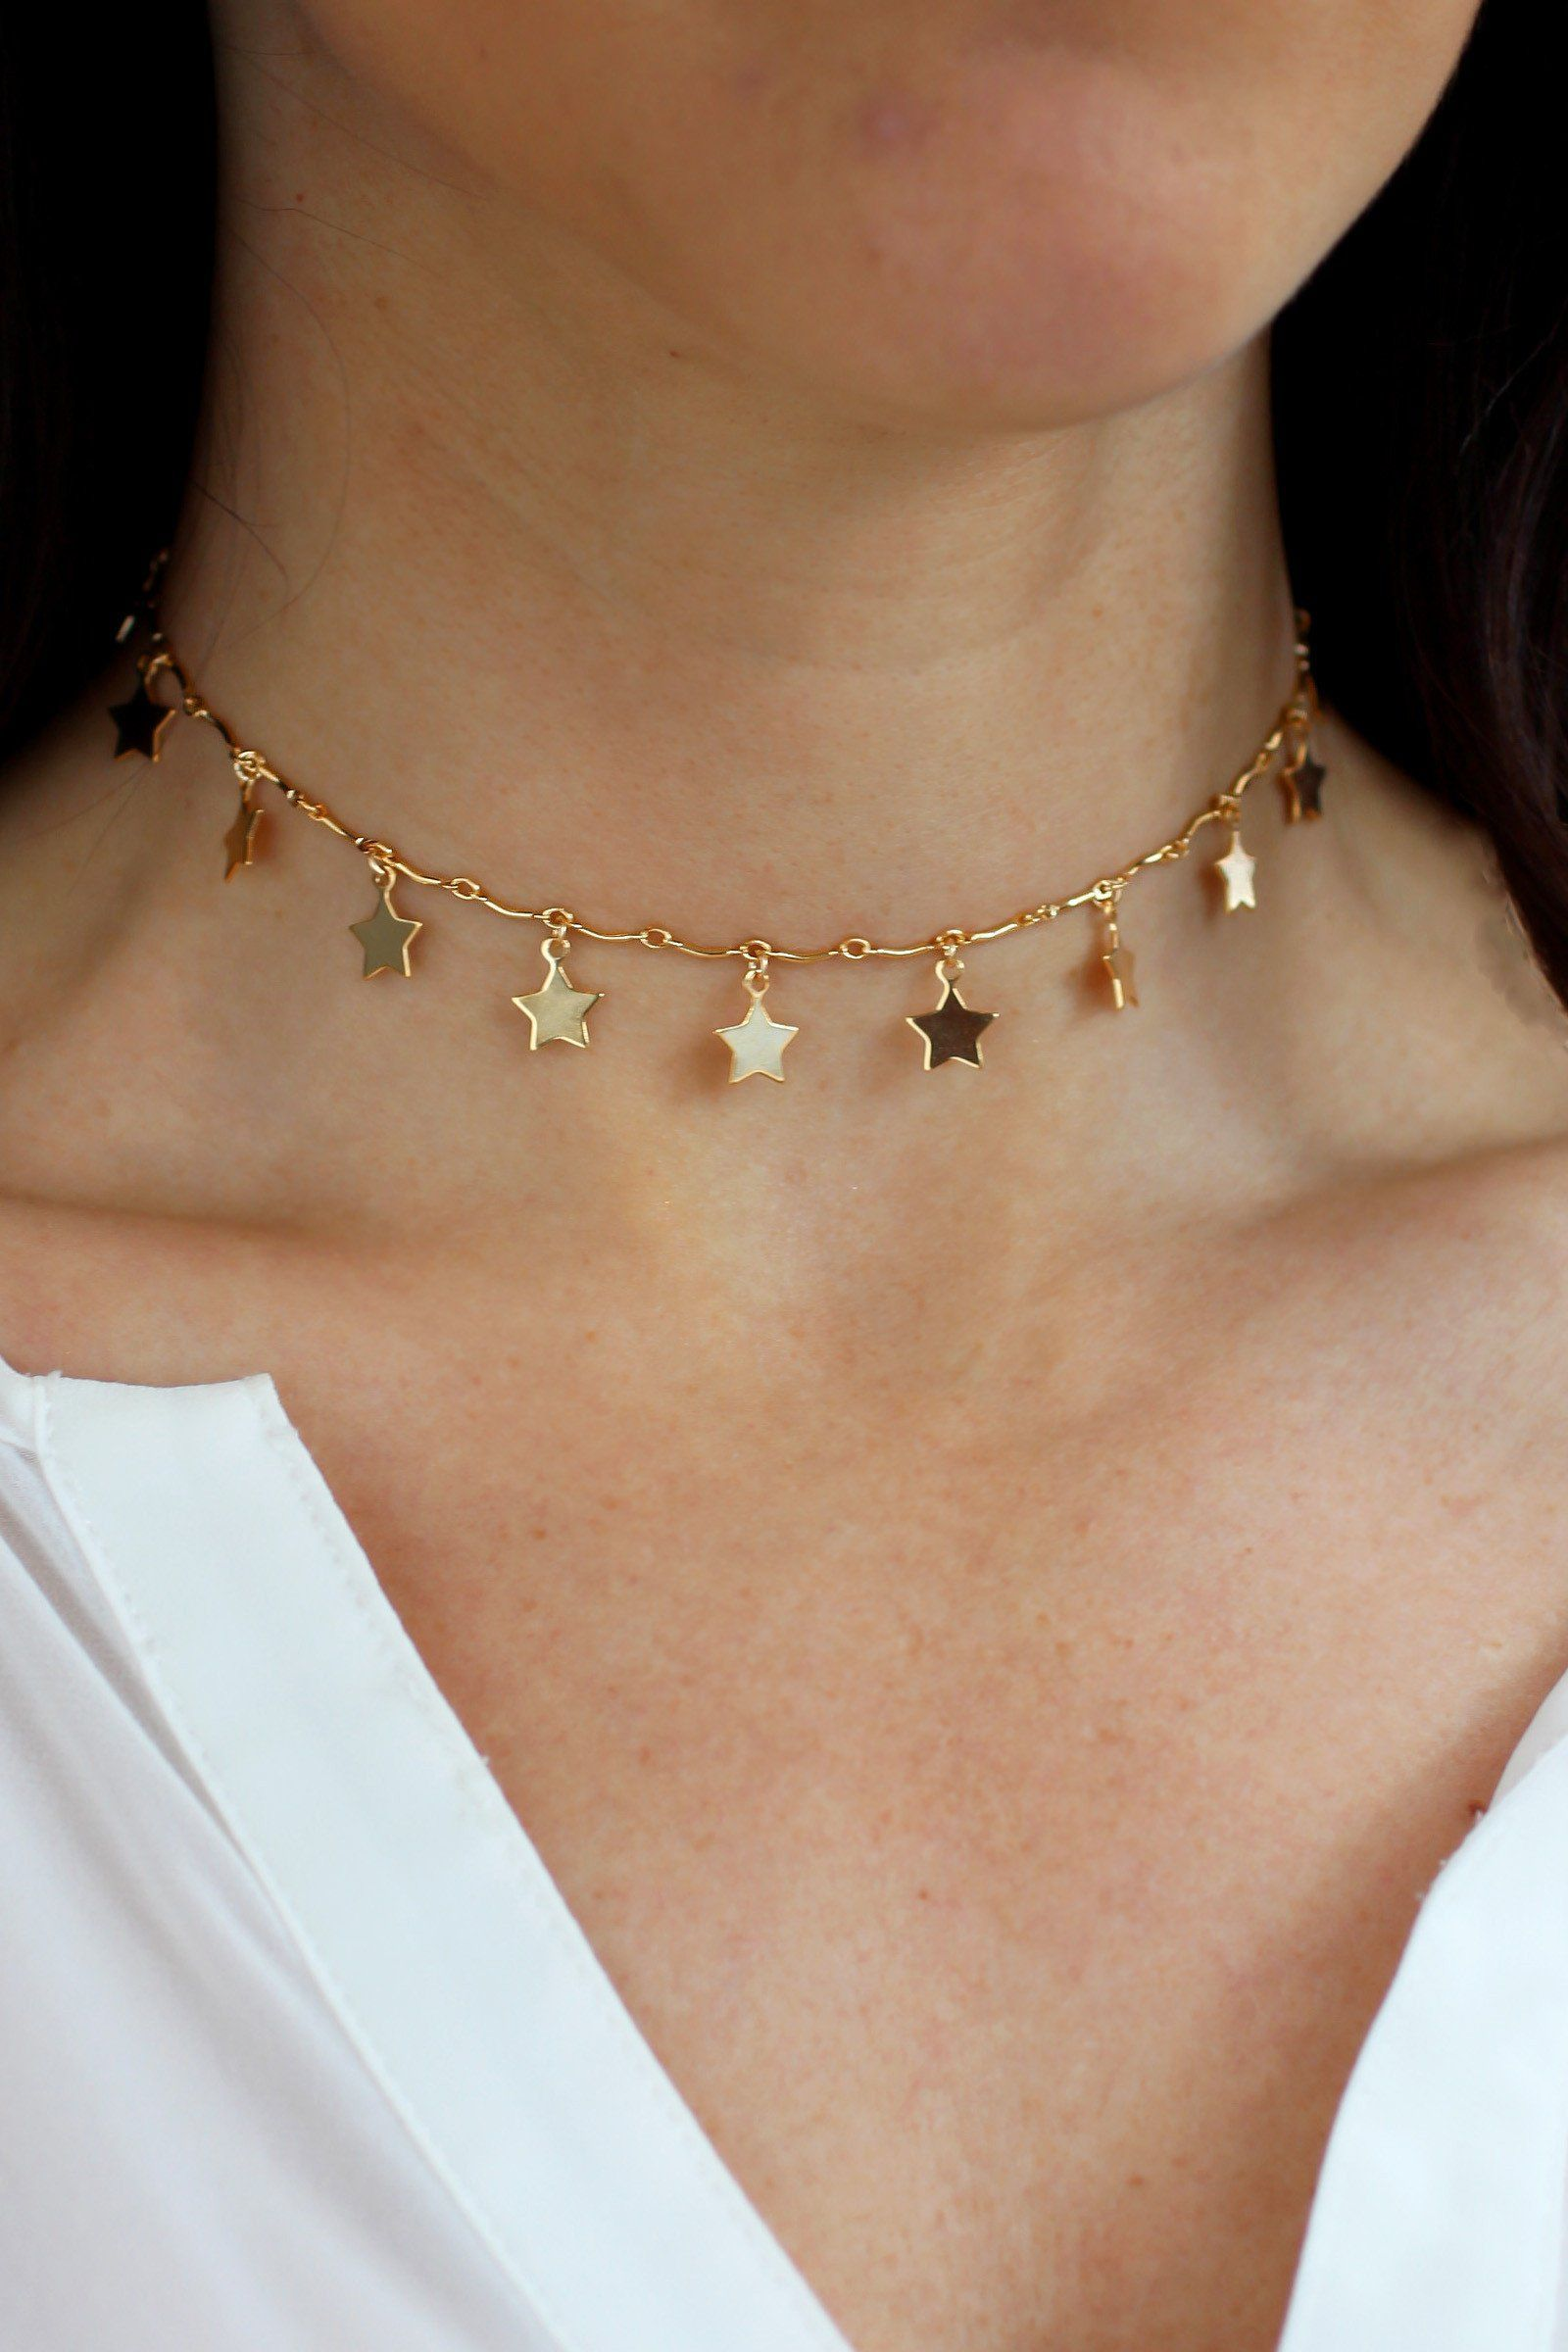 445814710 We're seeing stars over this statement choker from Christine Elizabeth  Jewelry! Intended to fit tight on the neck, the minimal bar chain is sleek  and simple ...